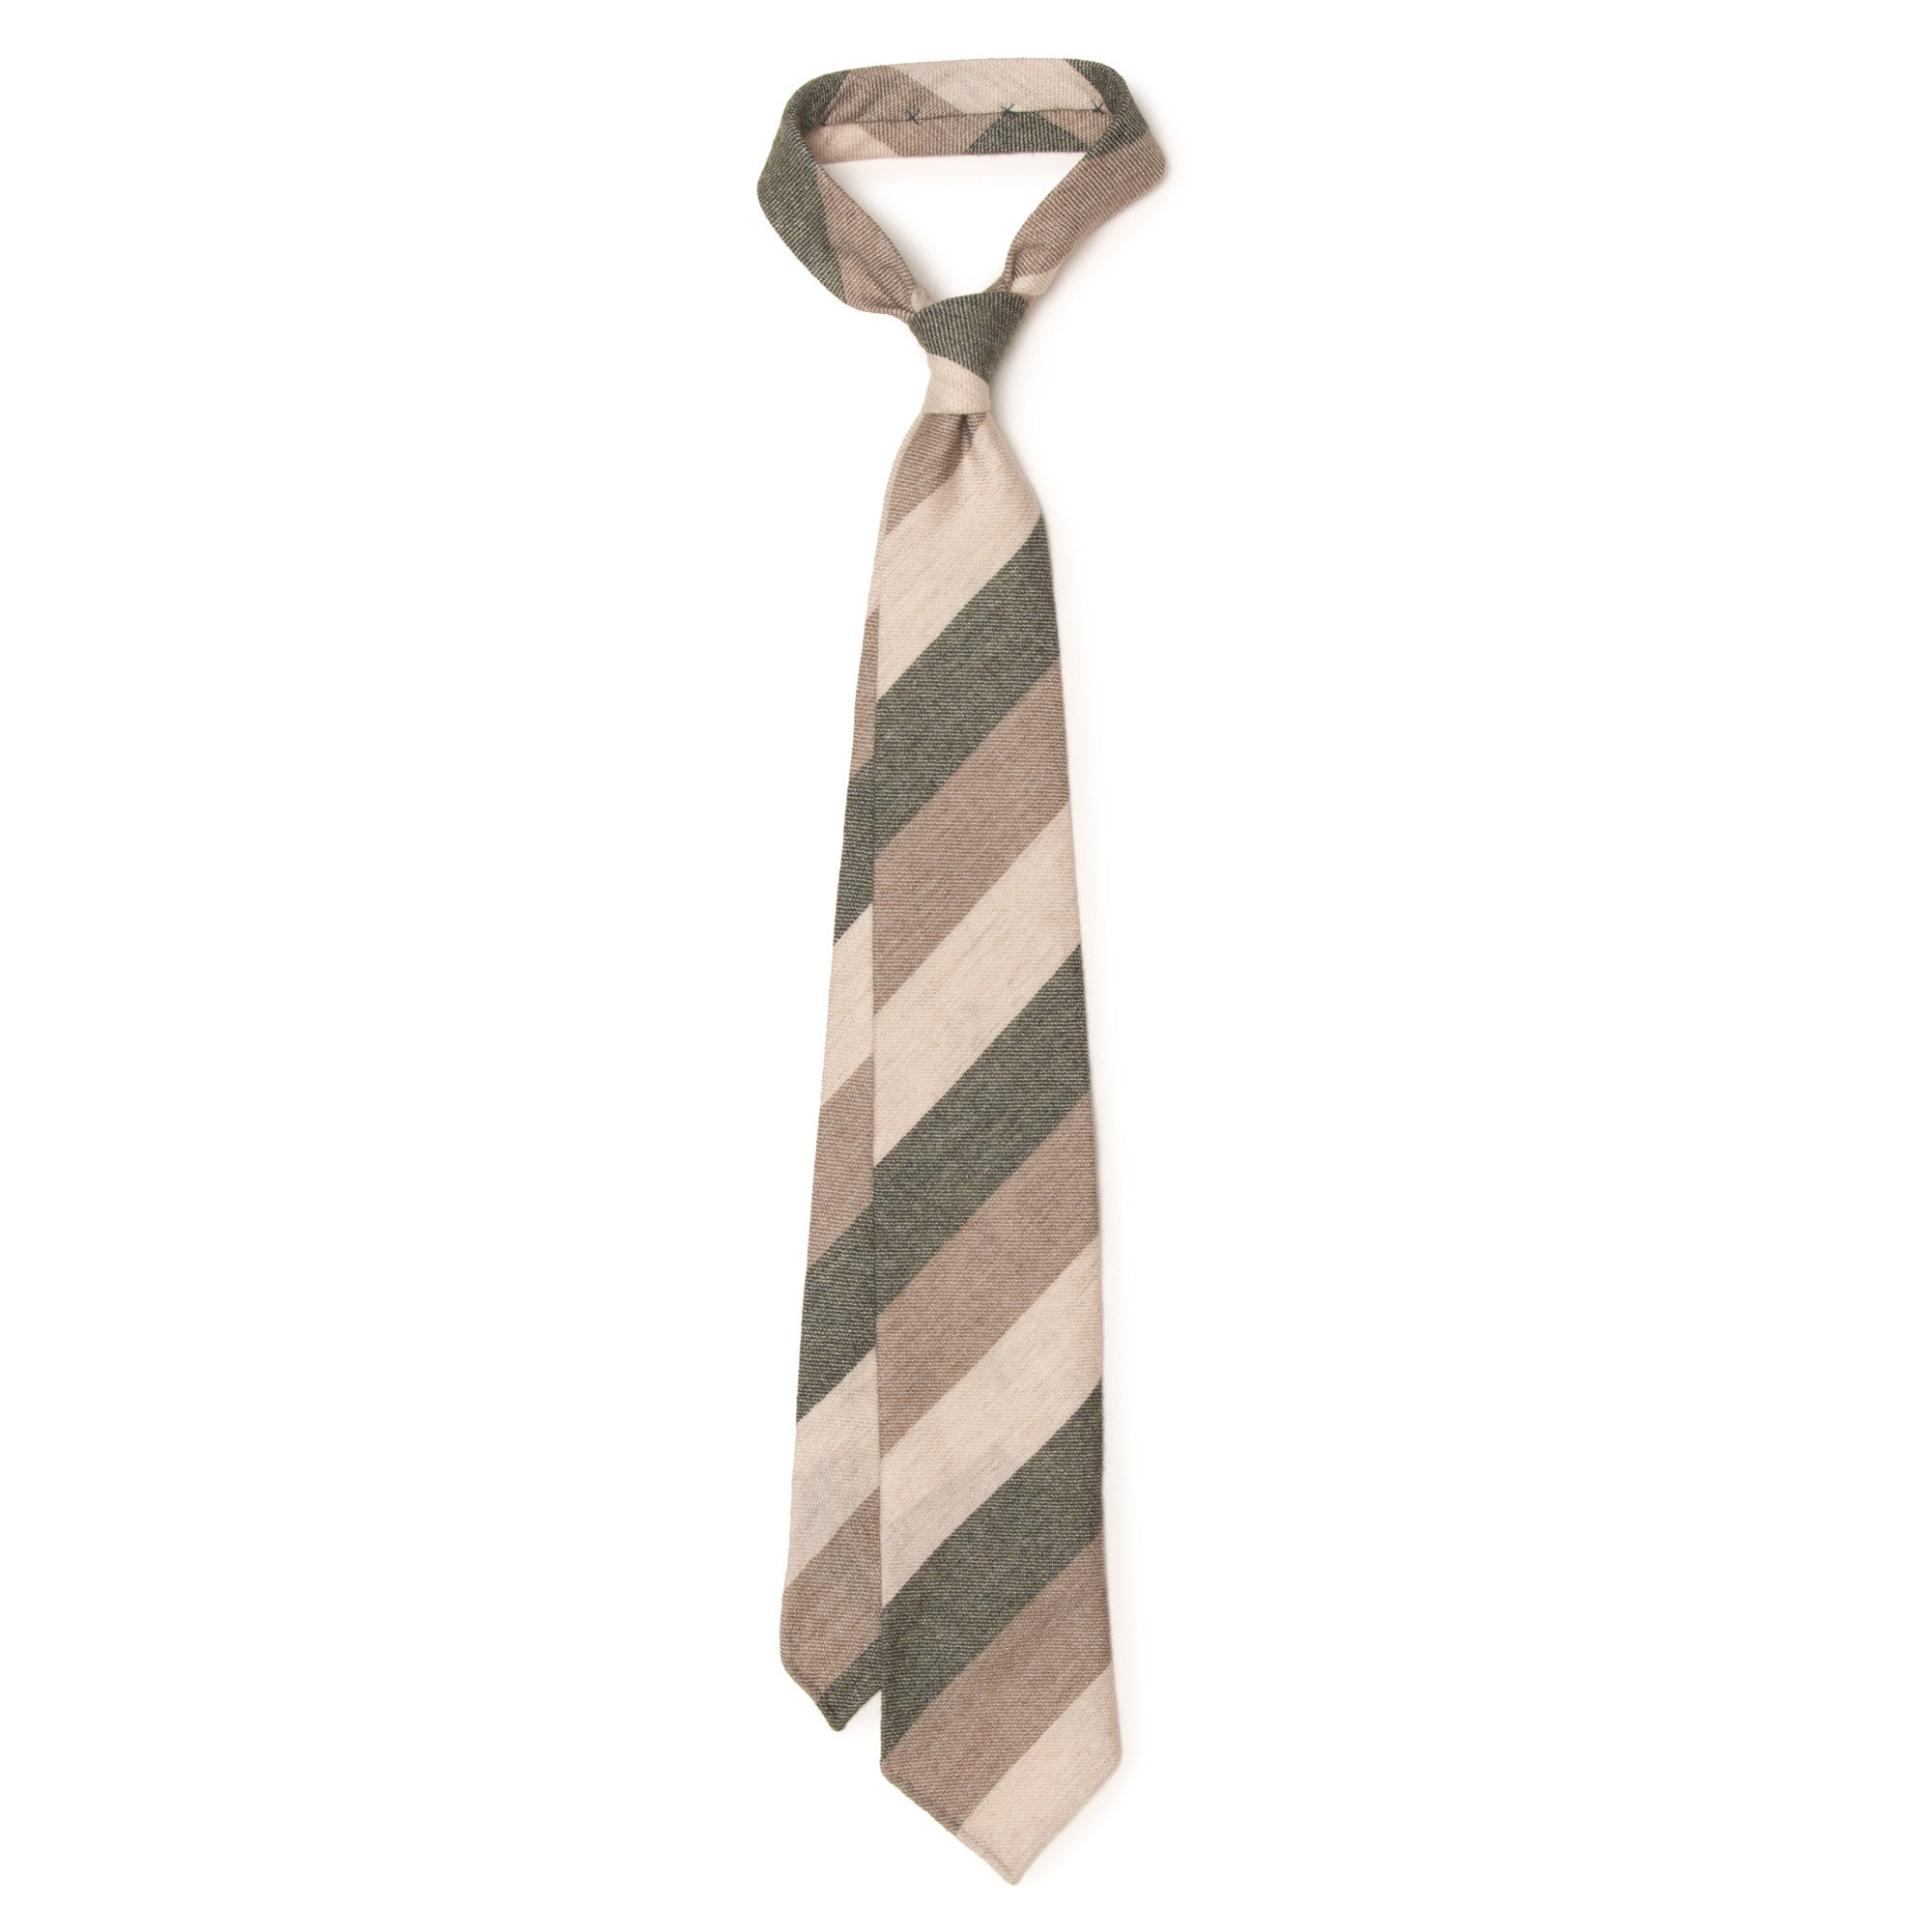 Cashmere Block Stripe Tie - Green, Brown, Cream